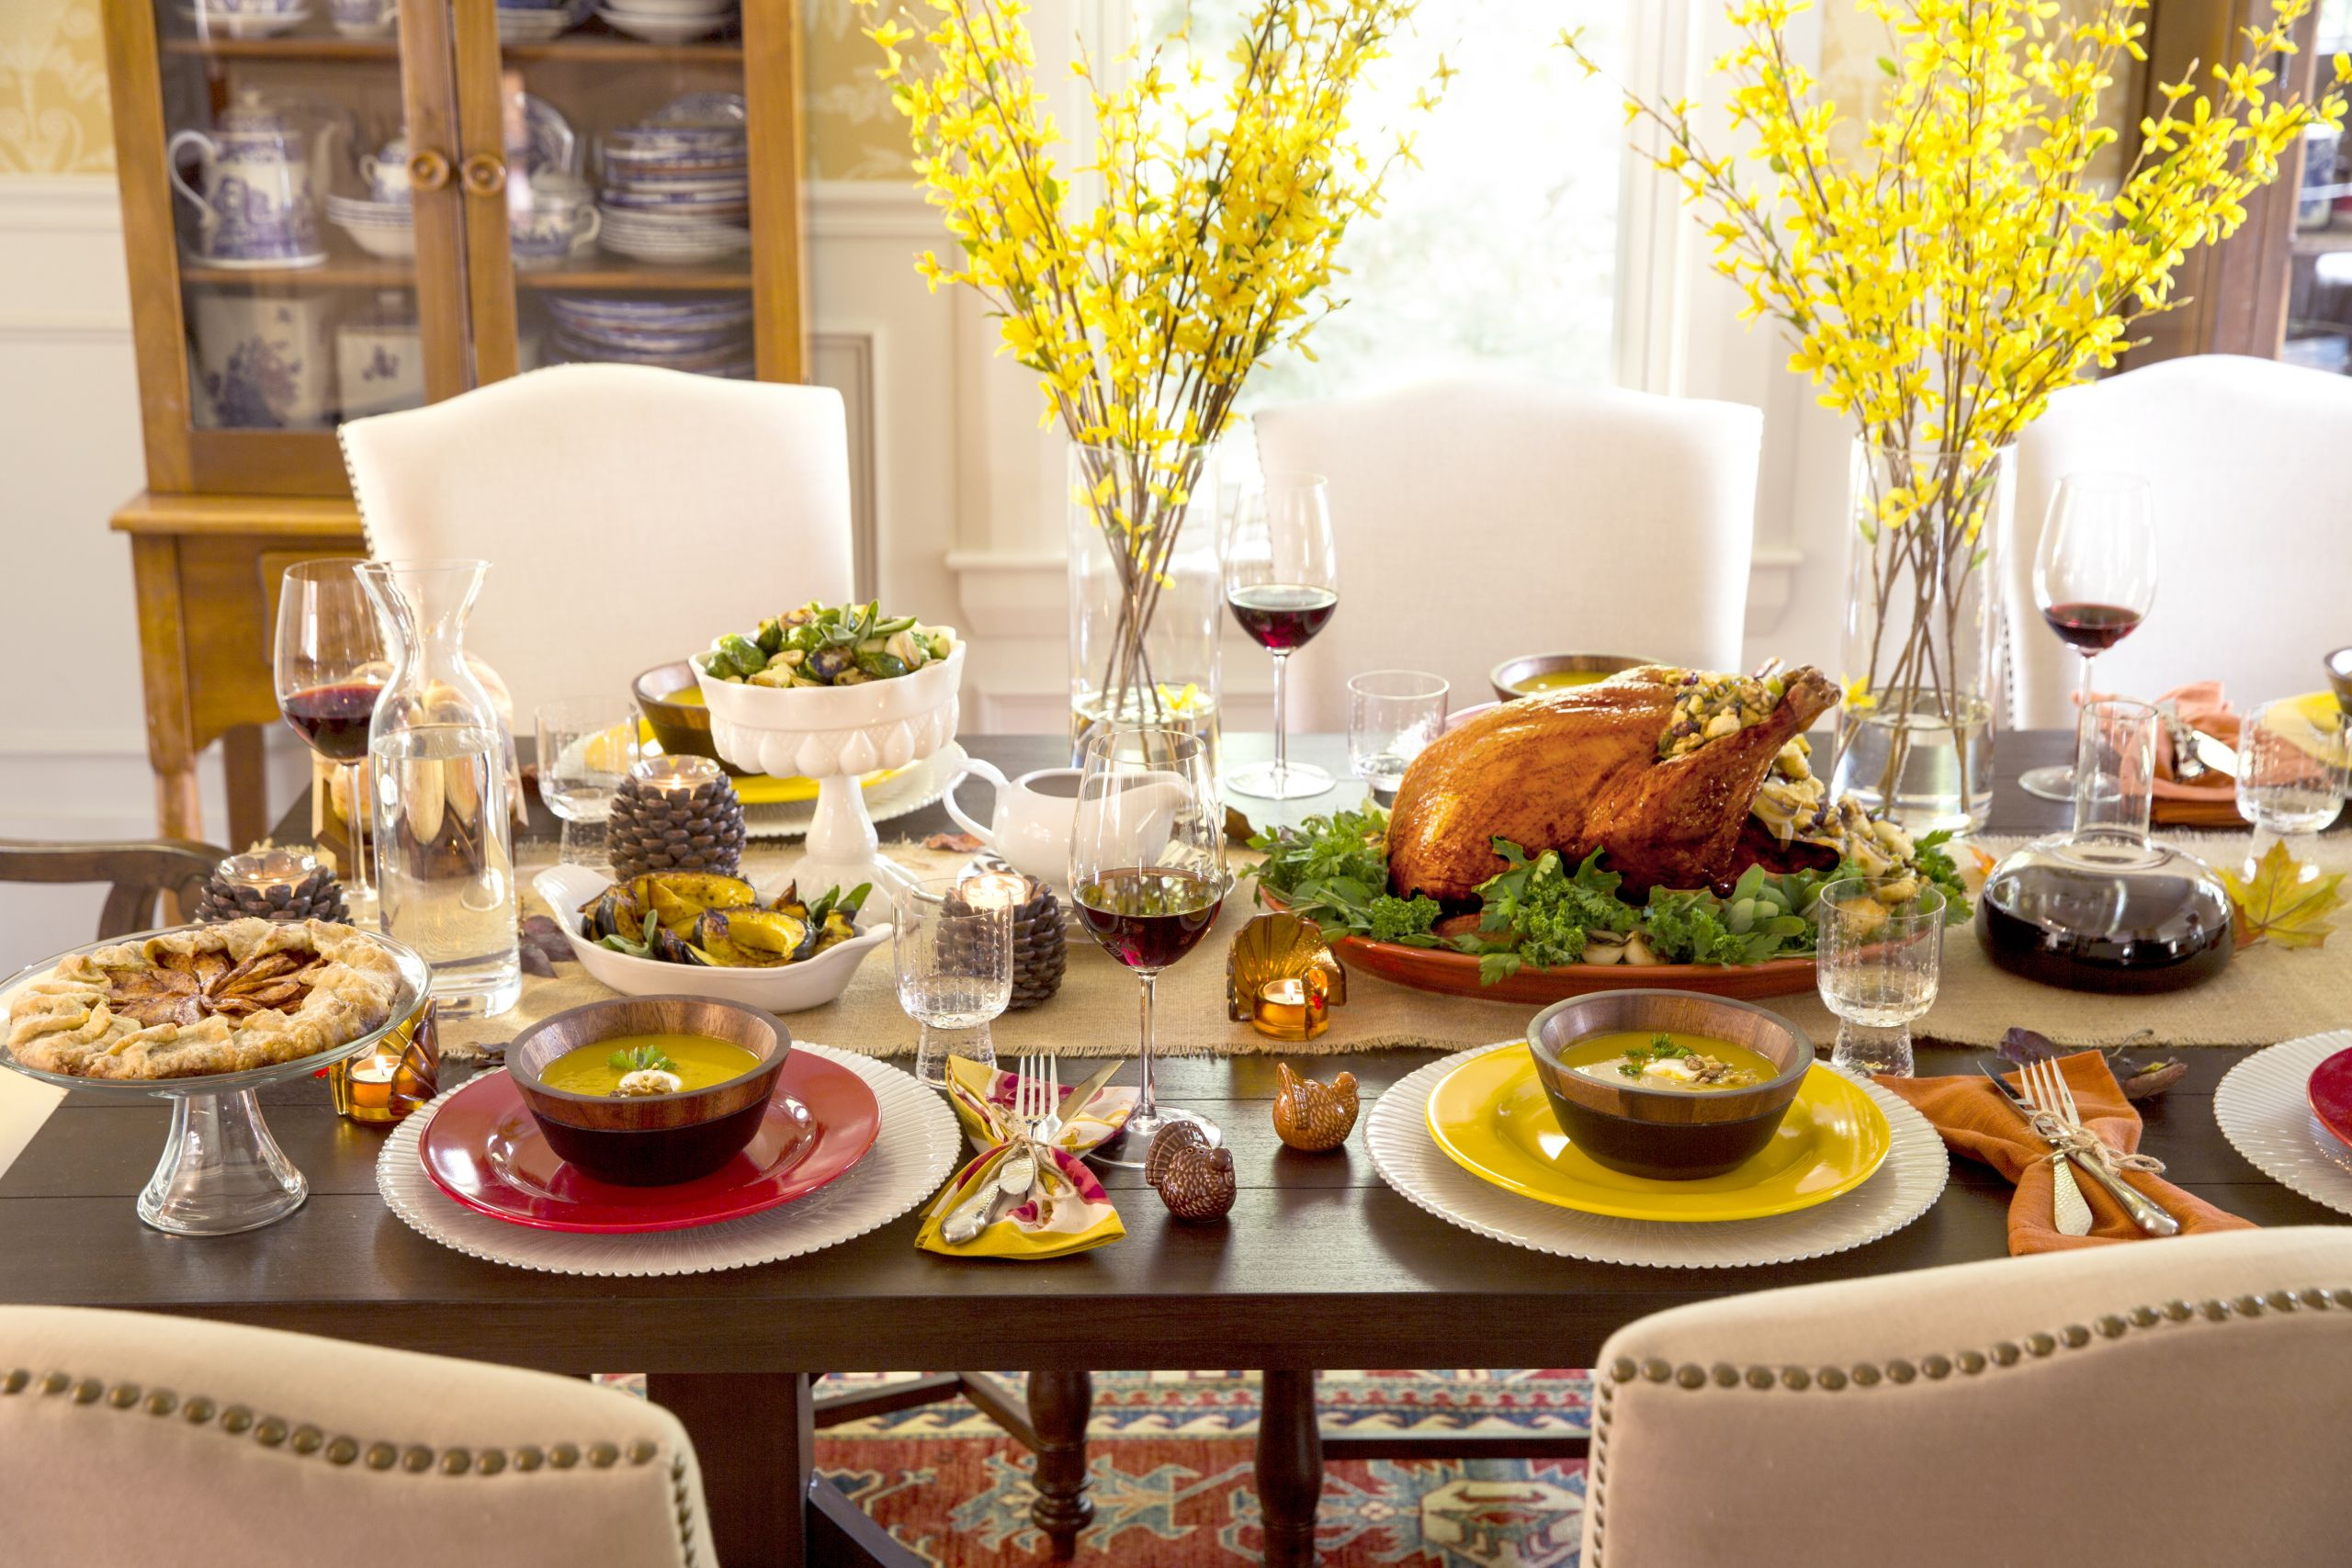 Thanksgiving Dinner Table Decorations  10 Tips for Decorating and Setting Your Thanksgiving Table